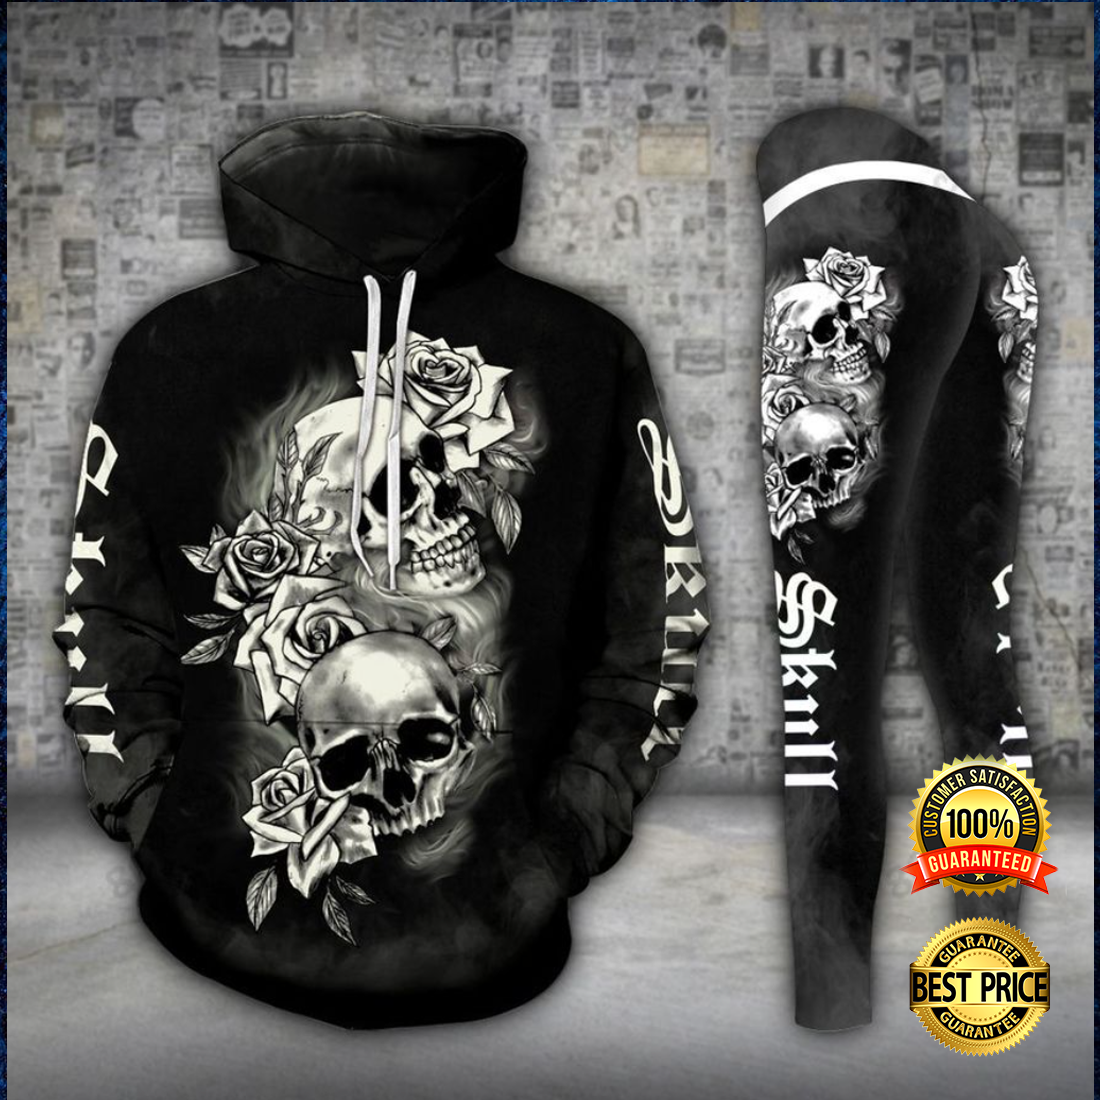 GOTHIC SKULL ALL OVER PRINT 3D HOODIE AND LEGGING 6